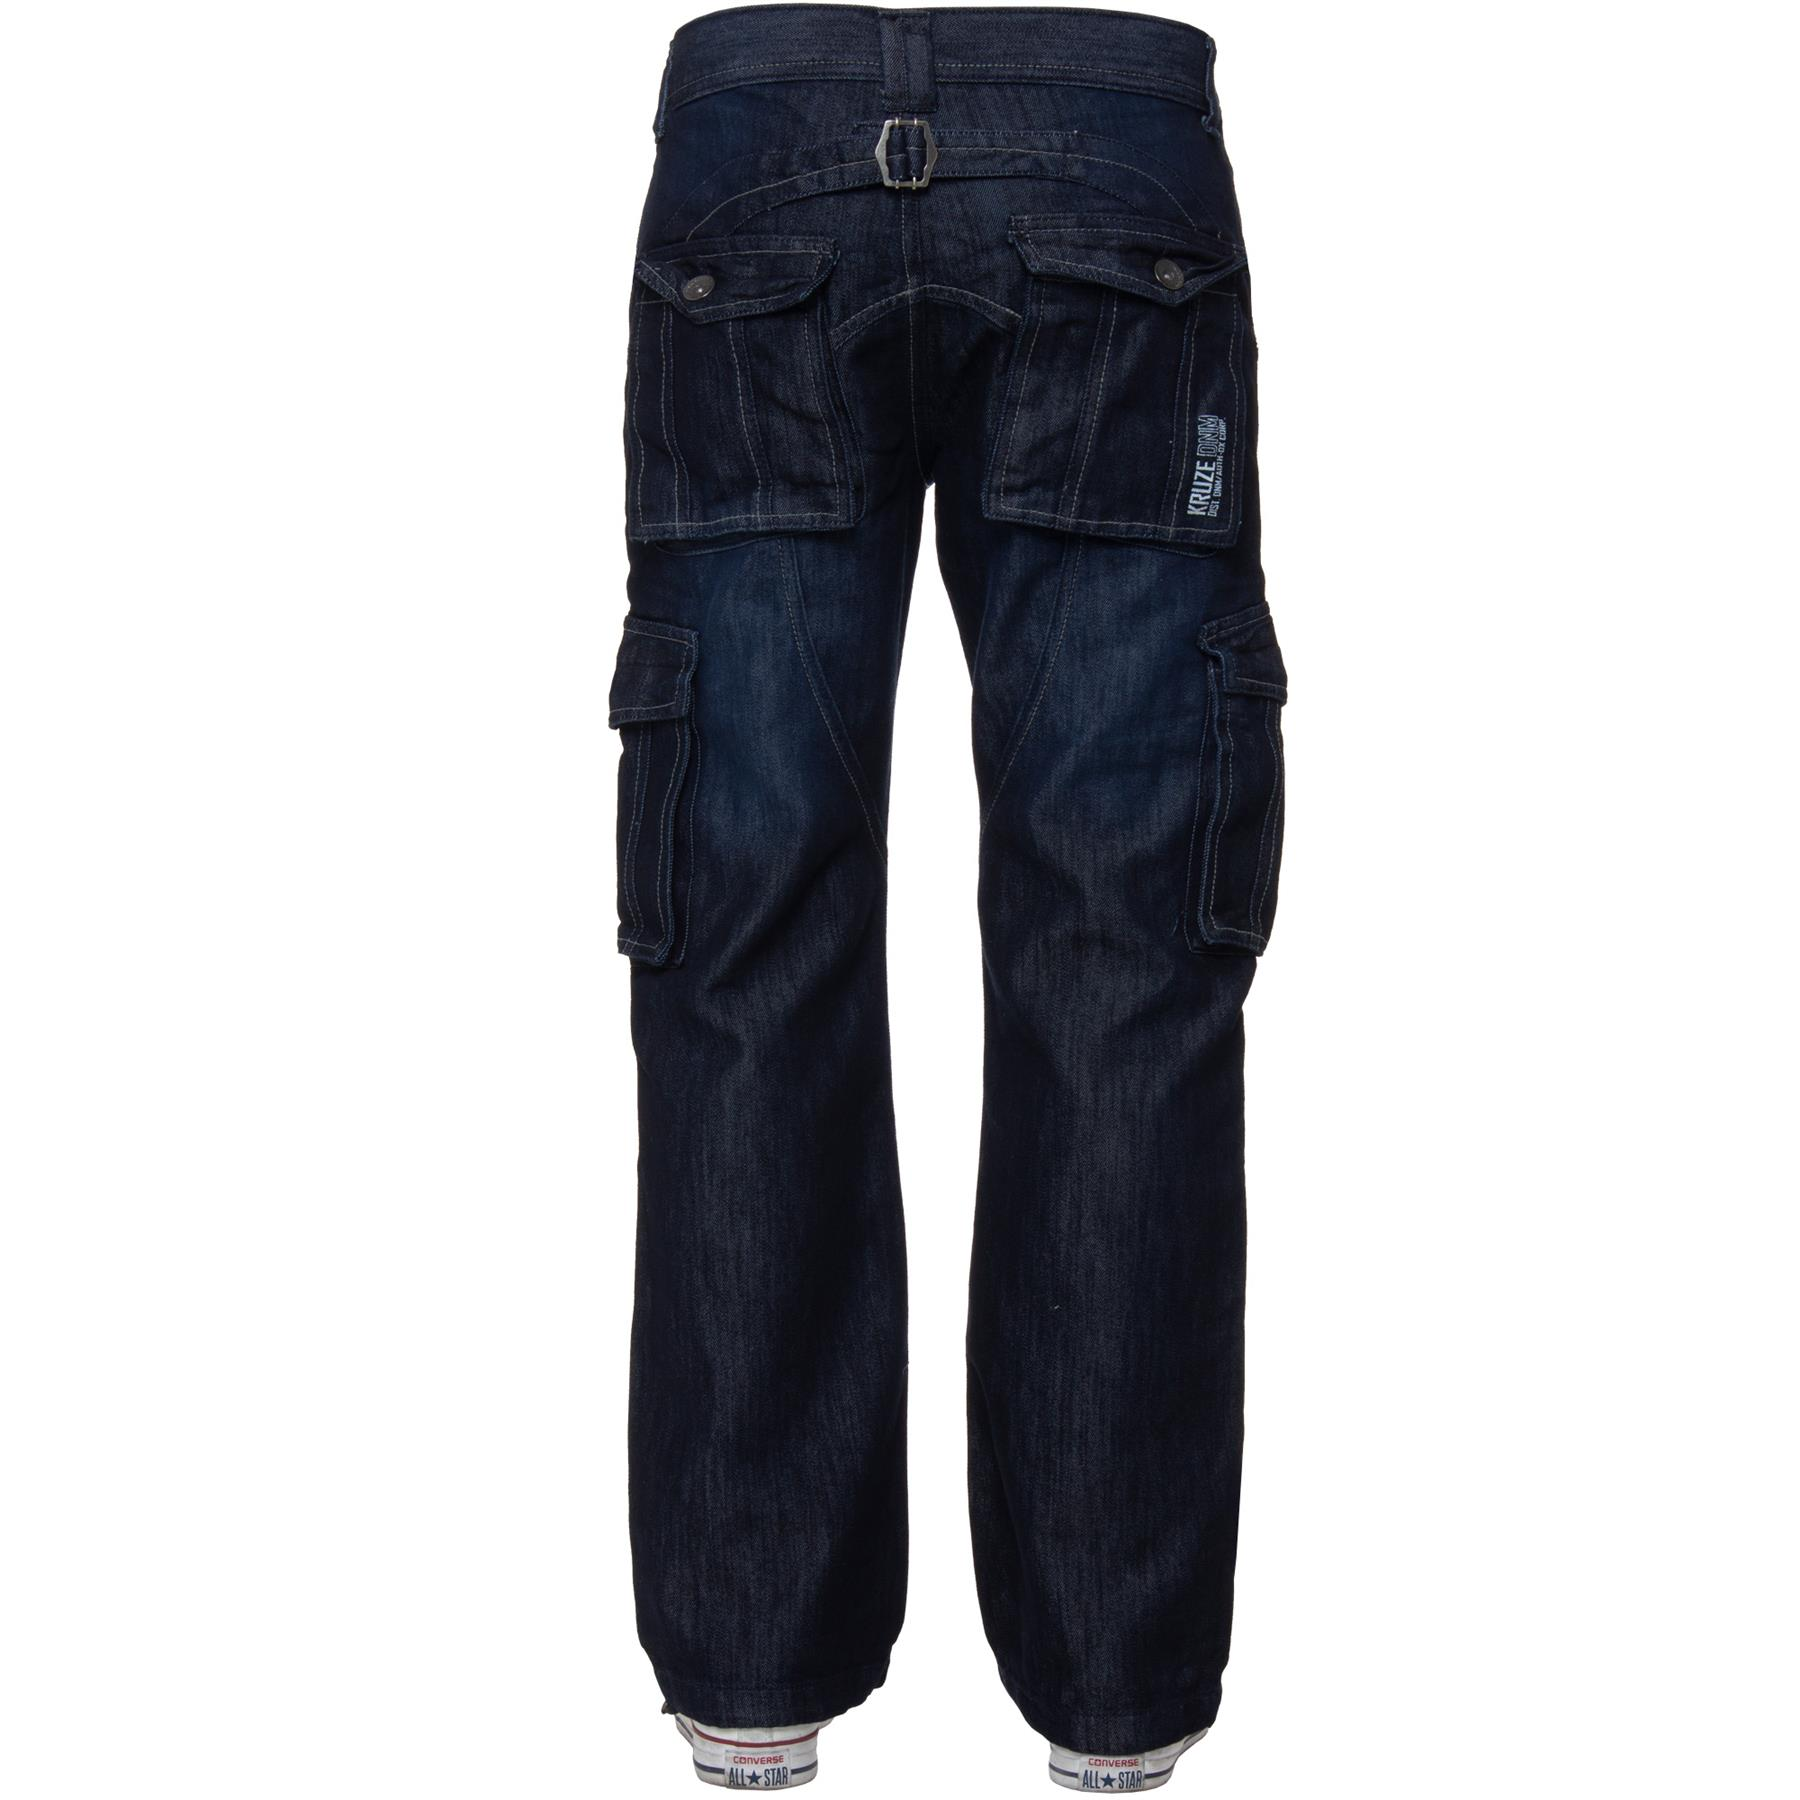 Kruze-Mens-Combat-Jeans-Casual-Cargo-Work-Denim-Trousers-Big-Tall-All-Waists thumbnail 11